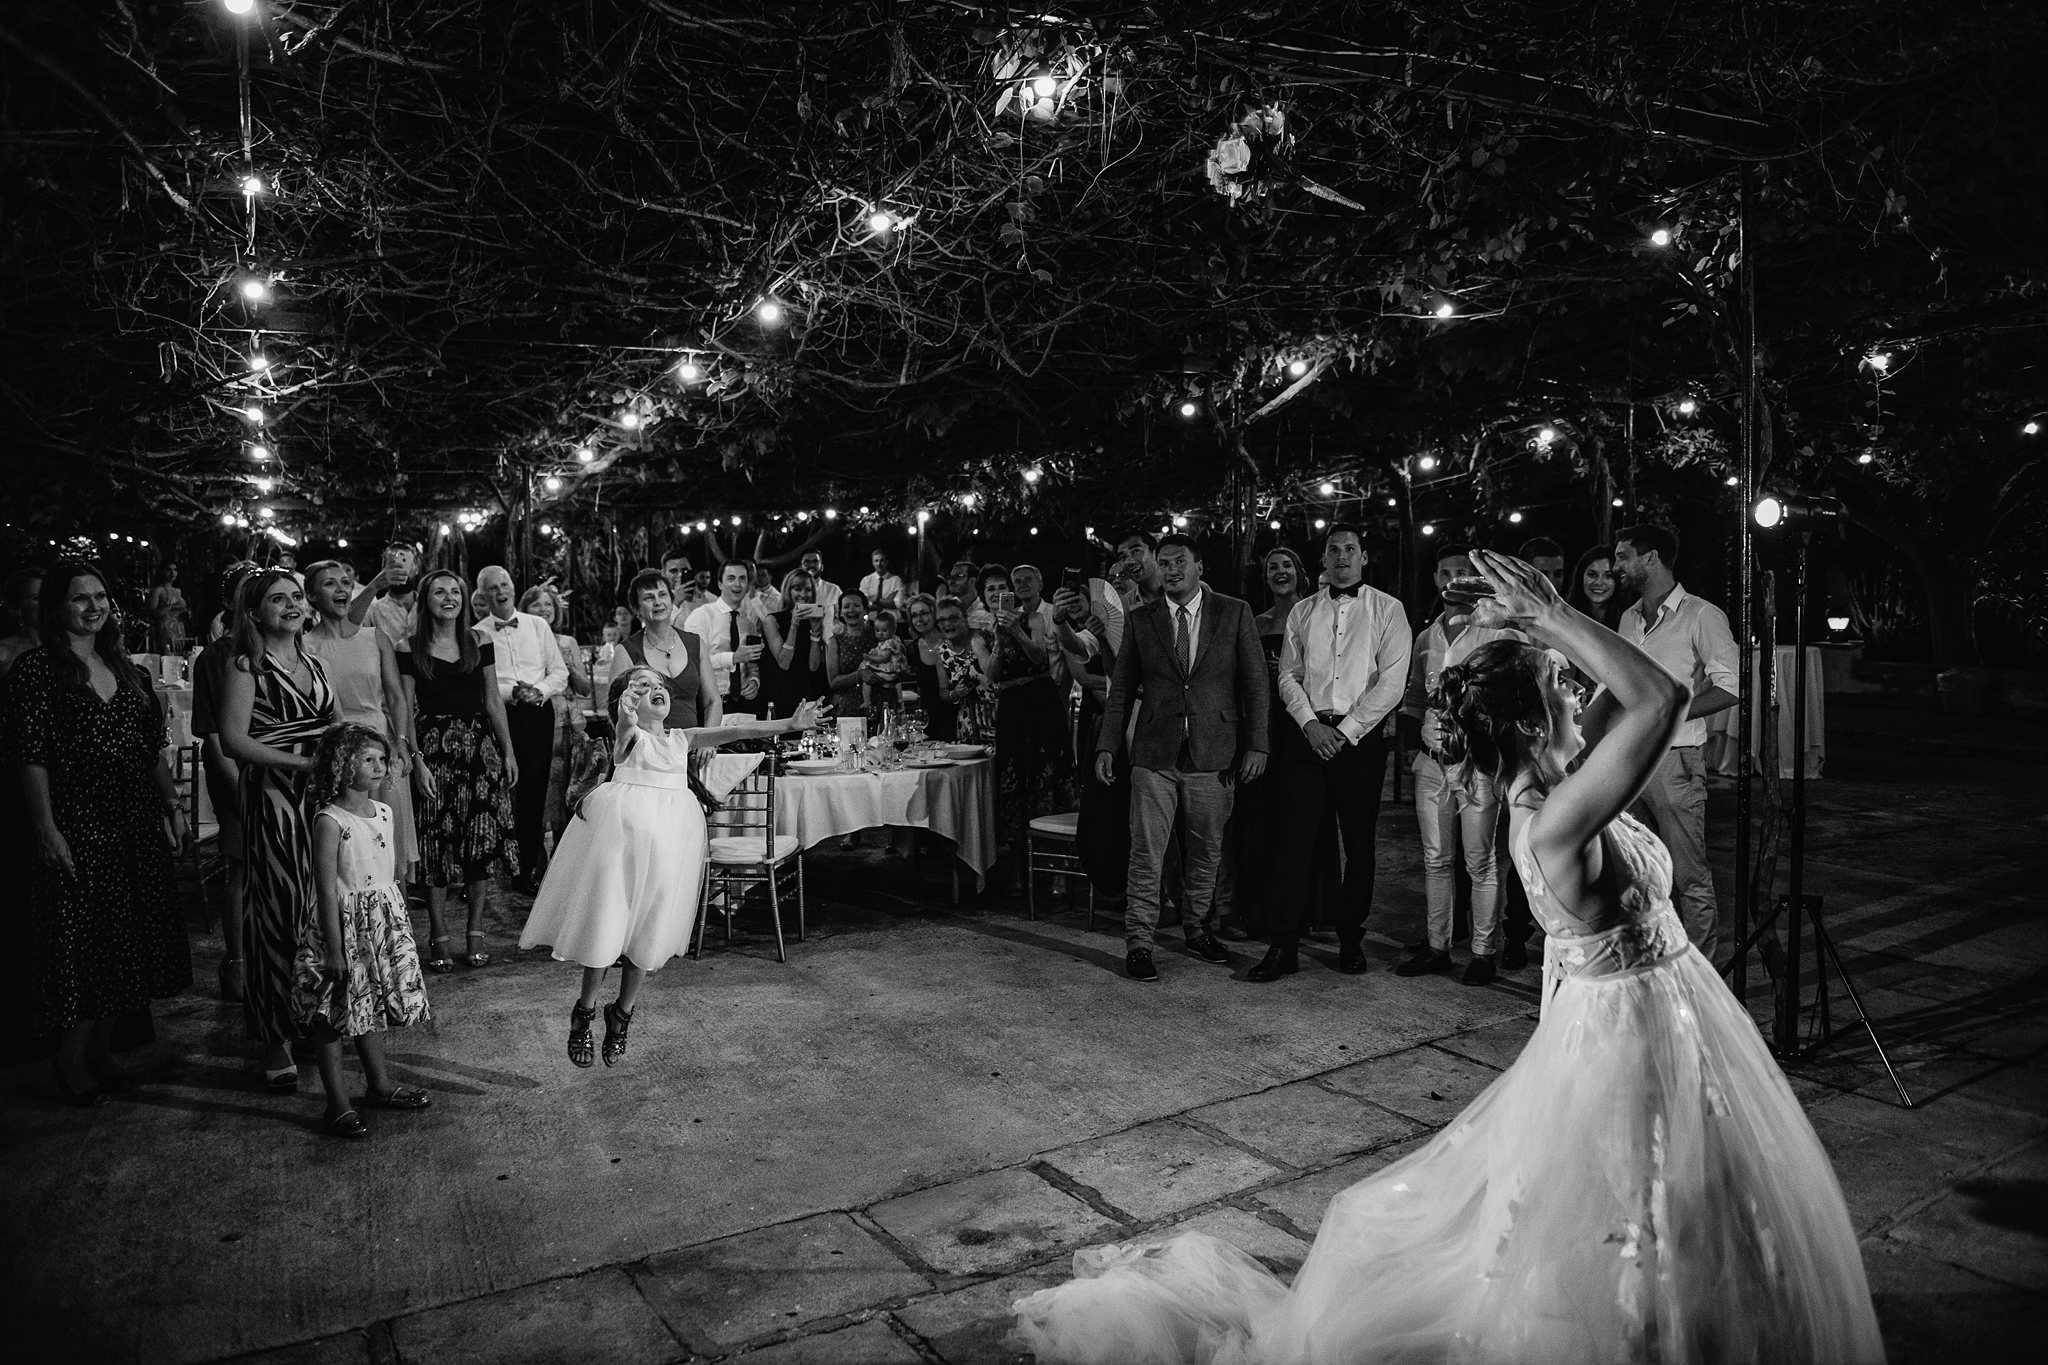 Little girl jumps into the air to catch bouquet - photo by Shane P. Watts Photography